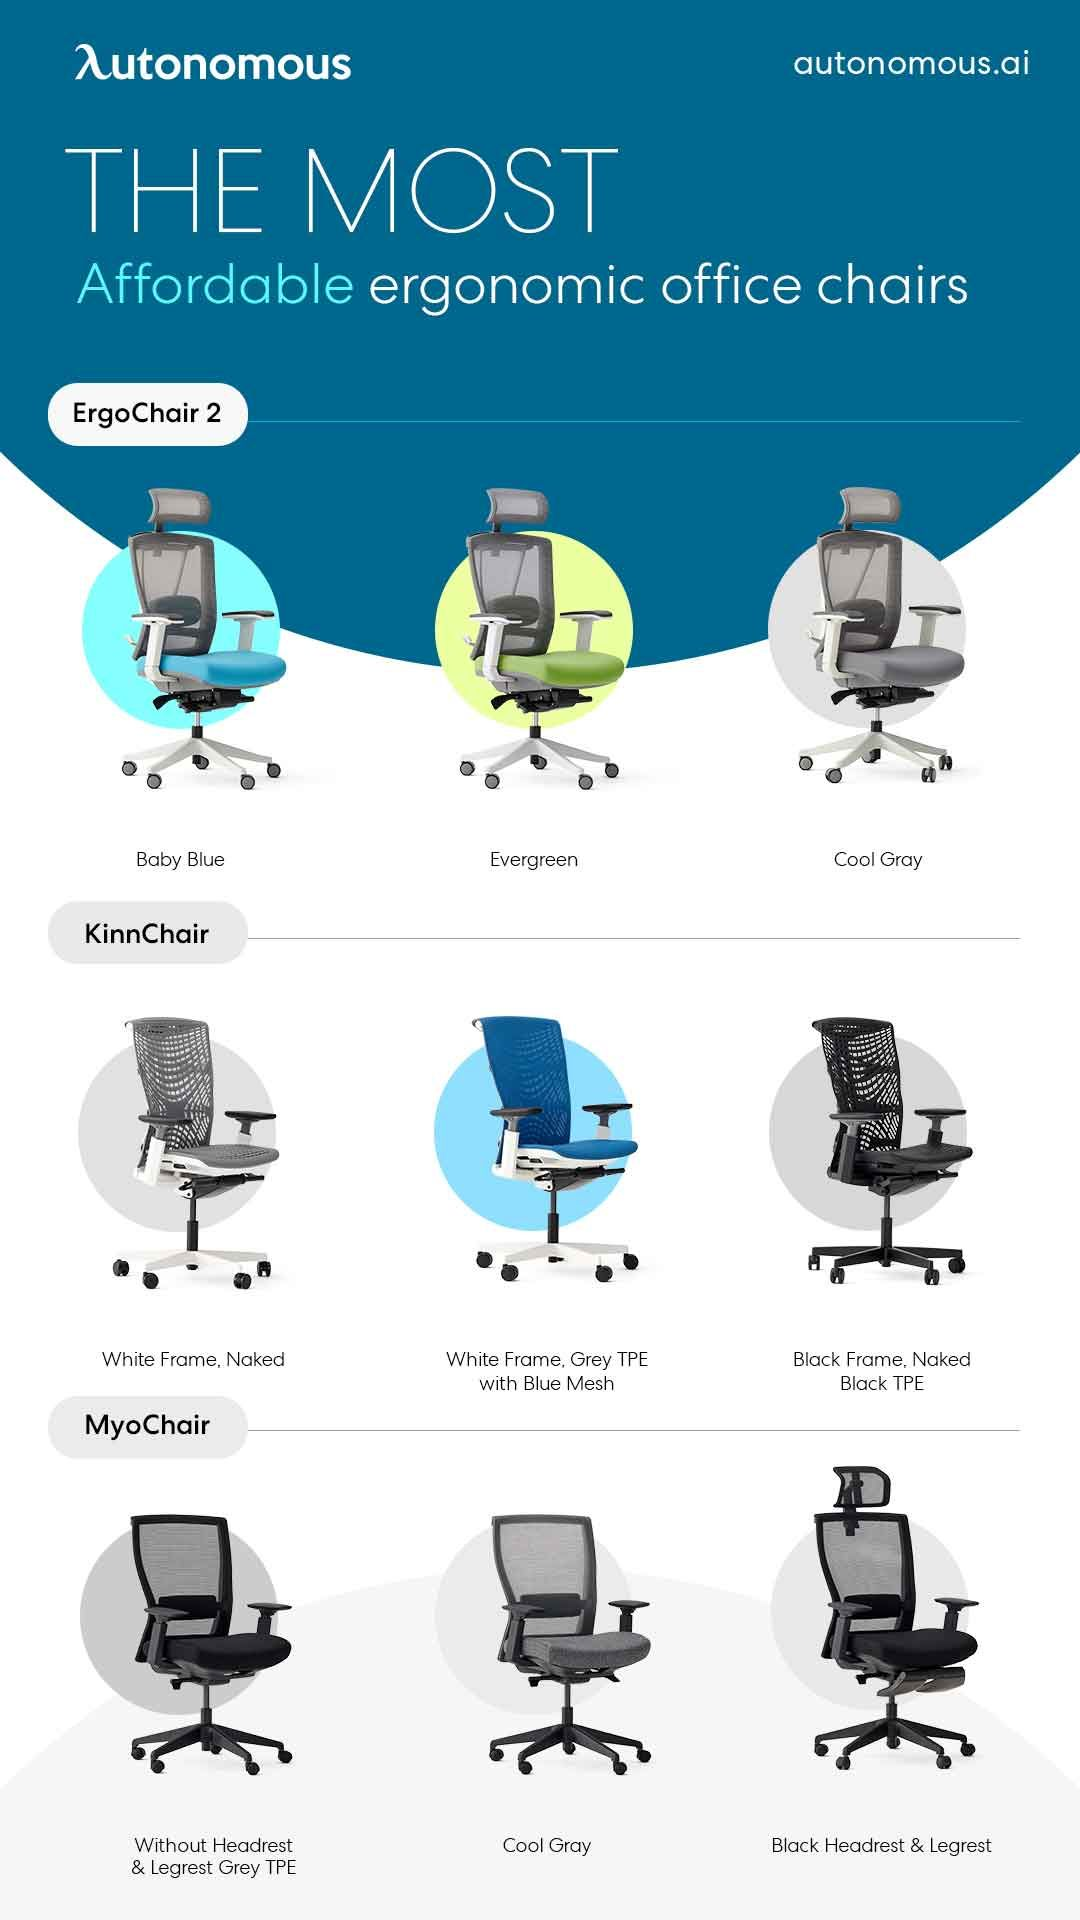 Best Ergonomic Office Chairs Autonomous In 2020 Ergonomic Office Chair Best Ergonomic Office Chair Ergonomic Office